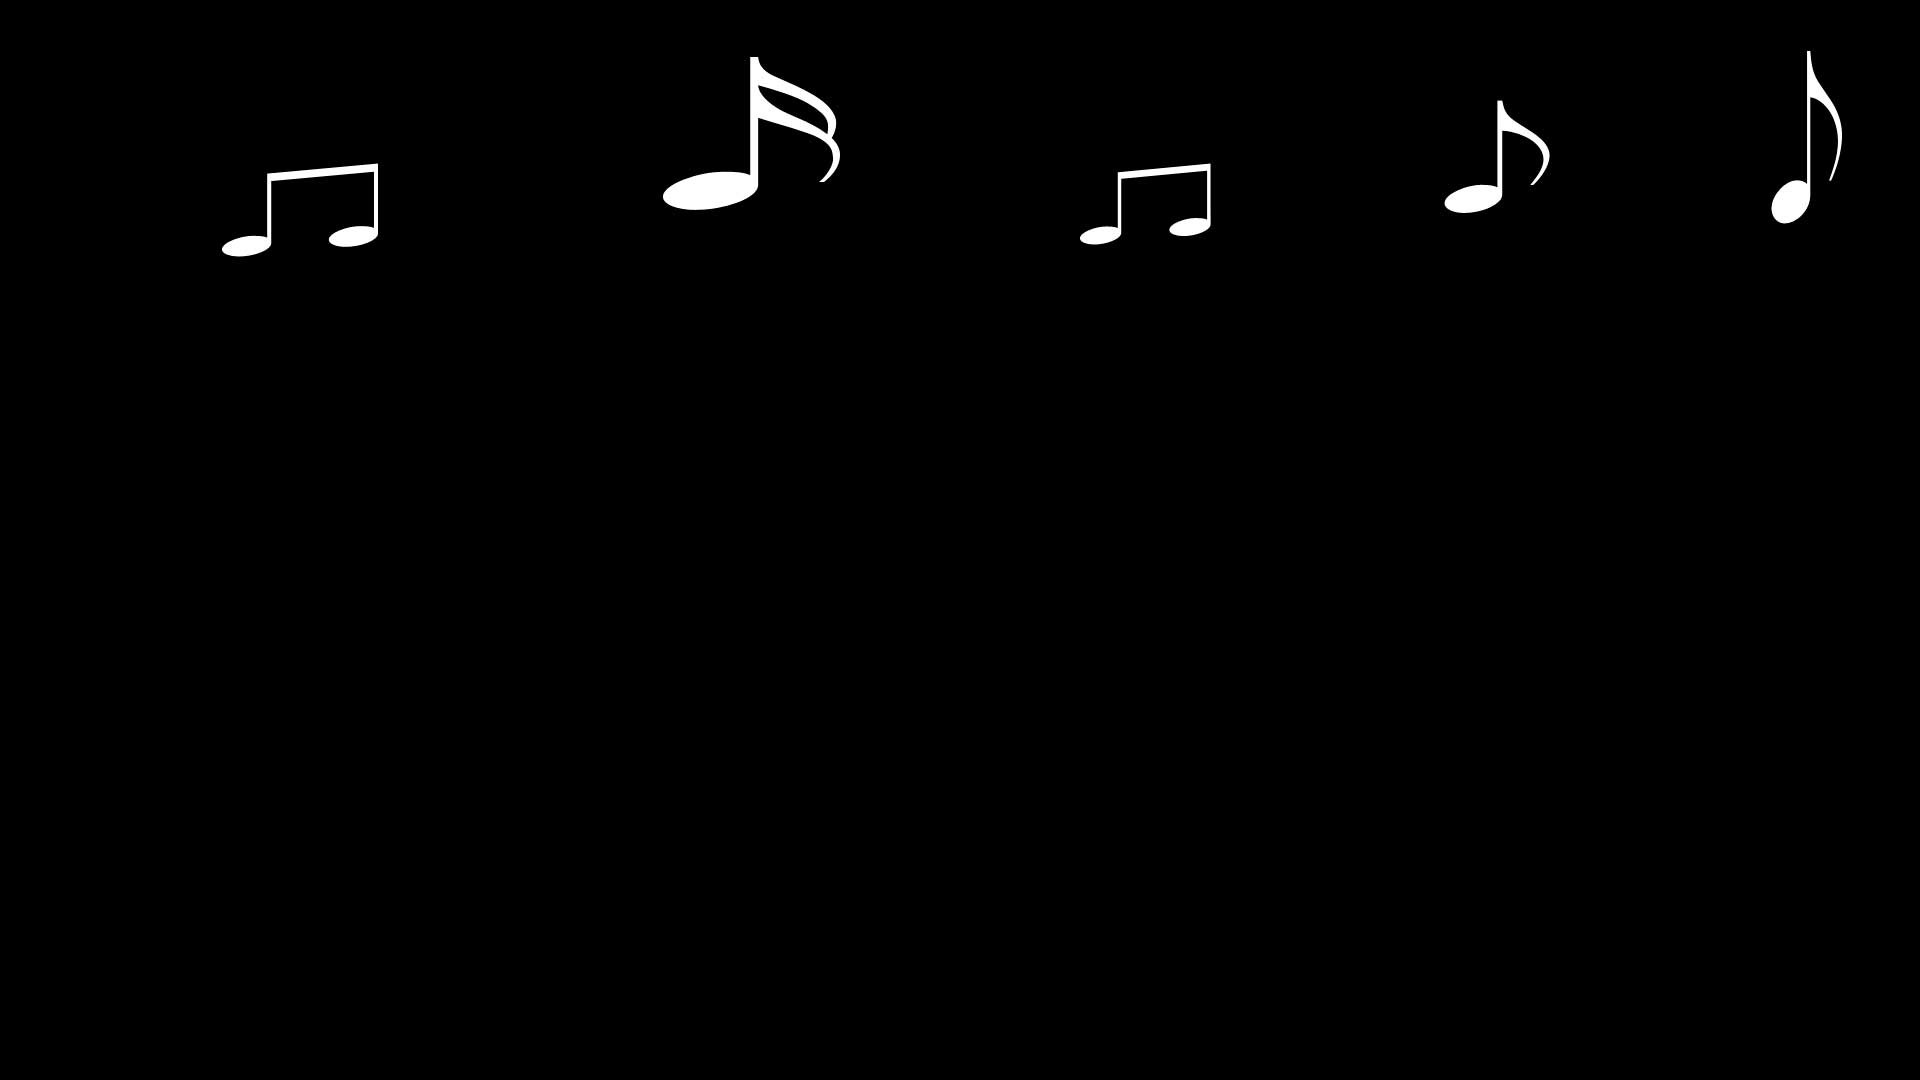 1920x1080 Black Background, White Music Notes